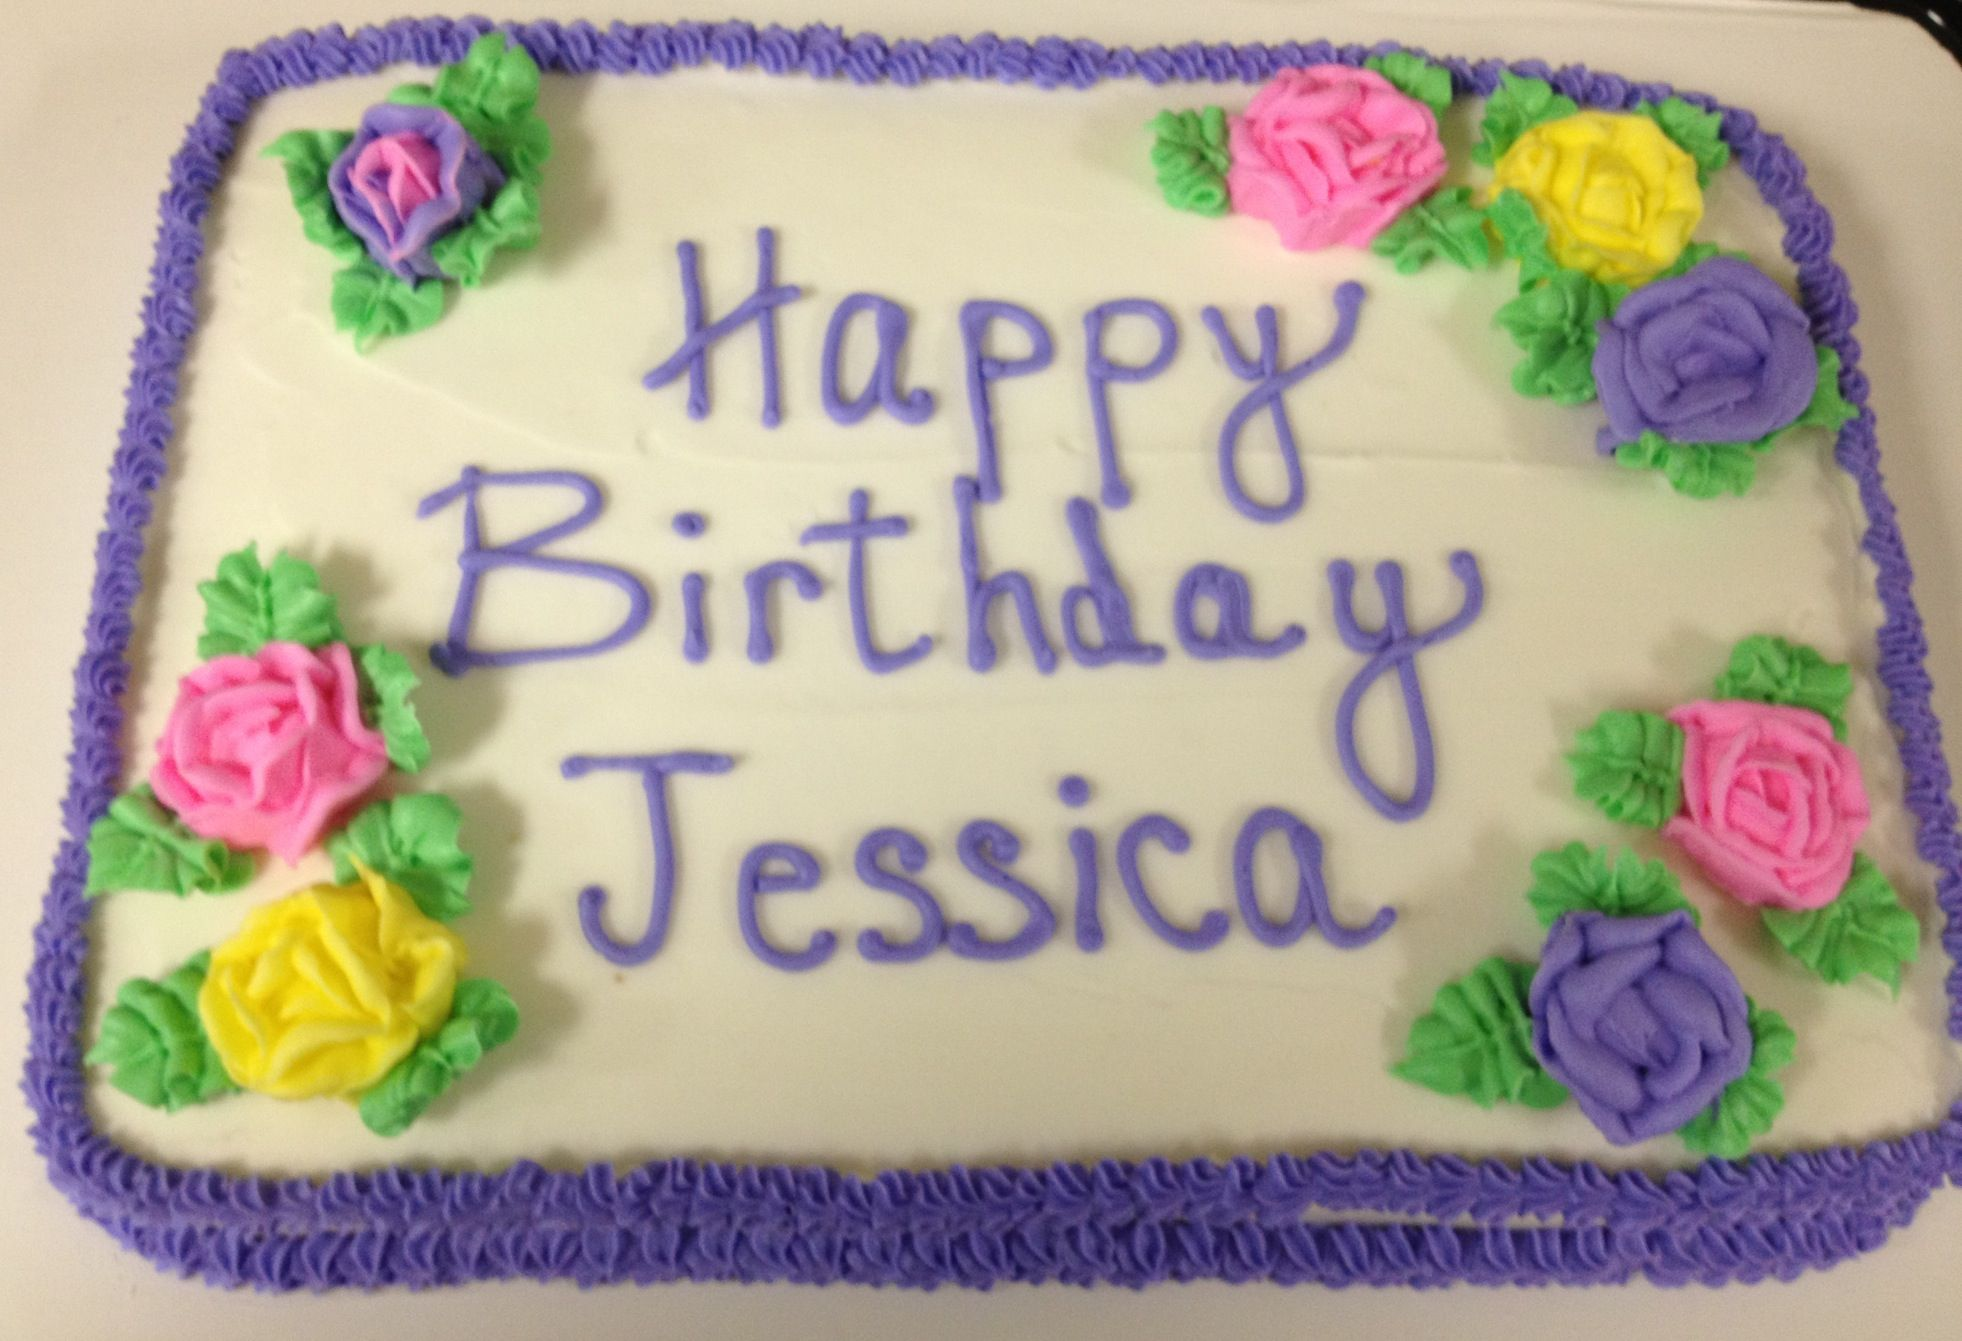 Birthday Cake Found This Cake With Your Name On It Jessica So I